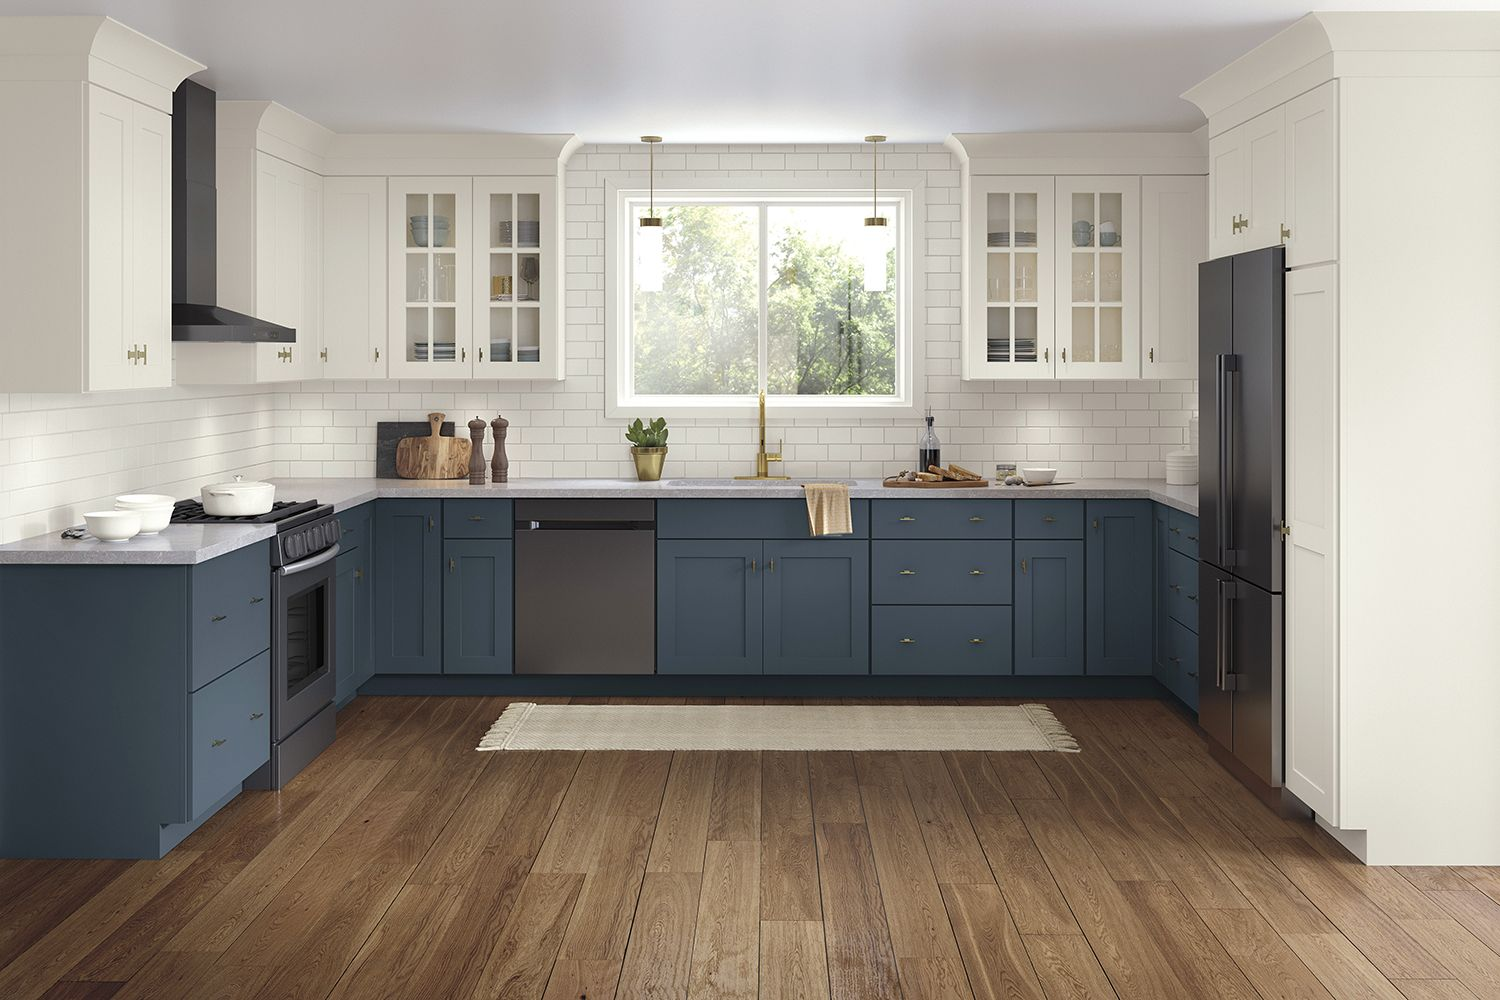 Color Trends for 2020 to Make Kitchens, Bathrooms Pop